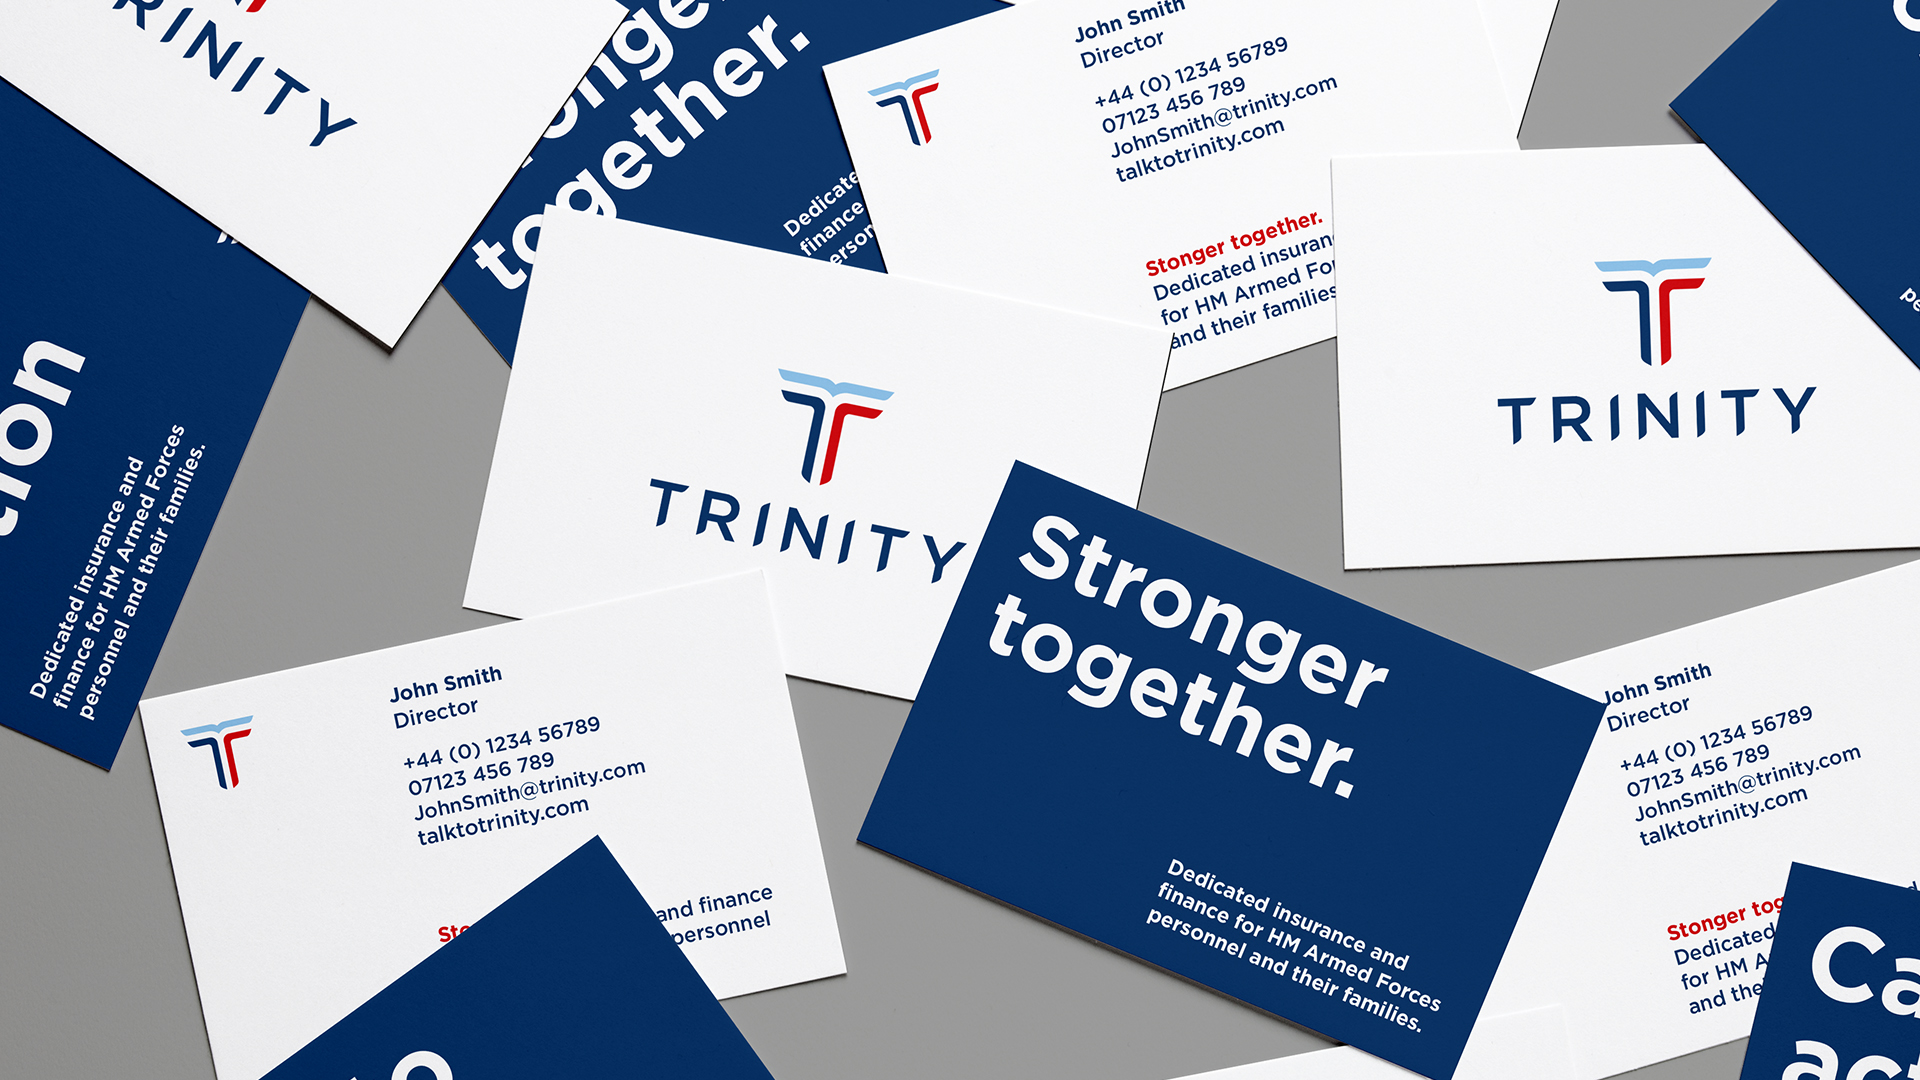 Trinity business cards